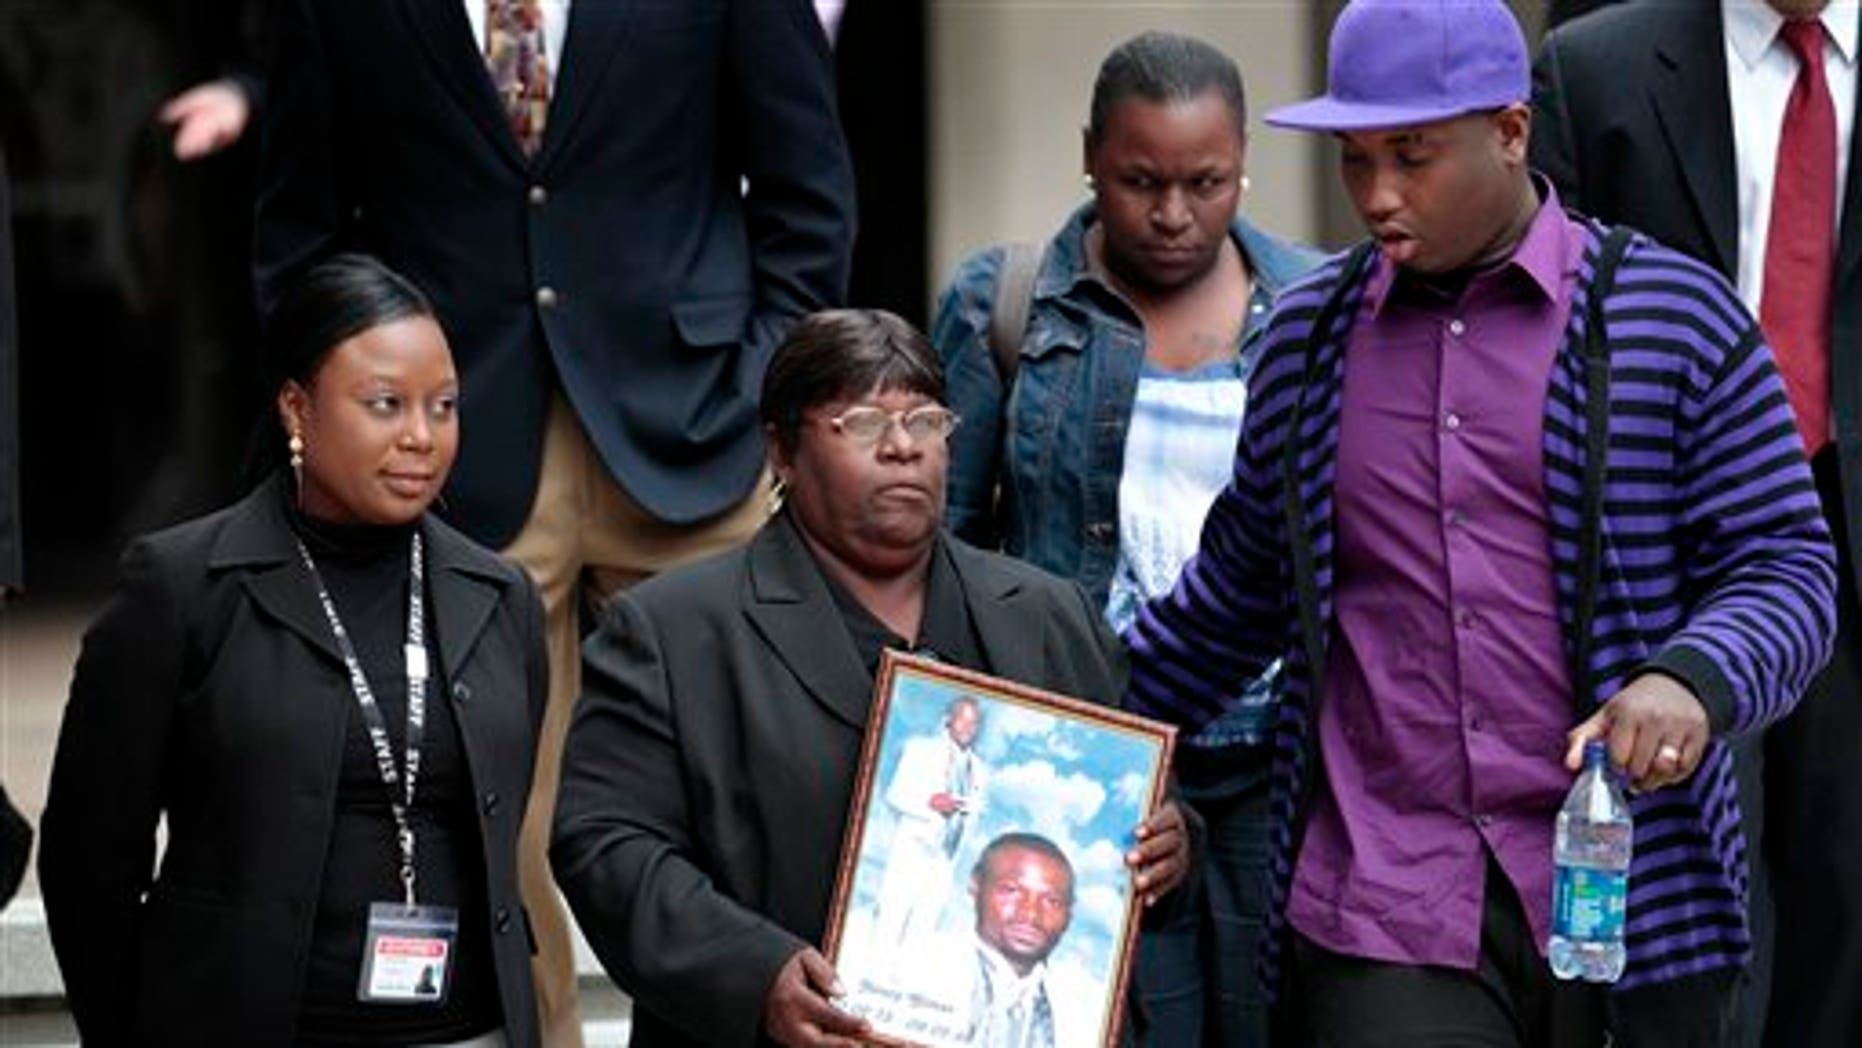 March 31: Edna Glover, mother of Henry Glover, leaving Federal Court holding his photo after the sentencing of two New Orleans police offers in his death.